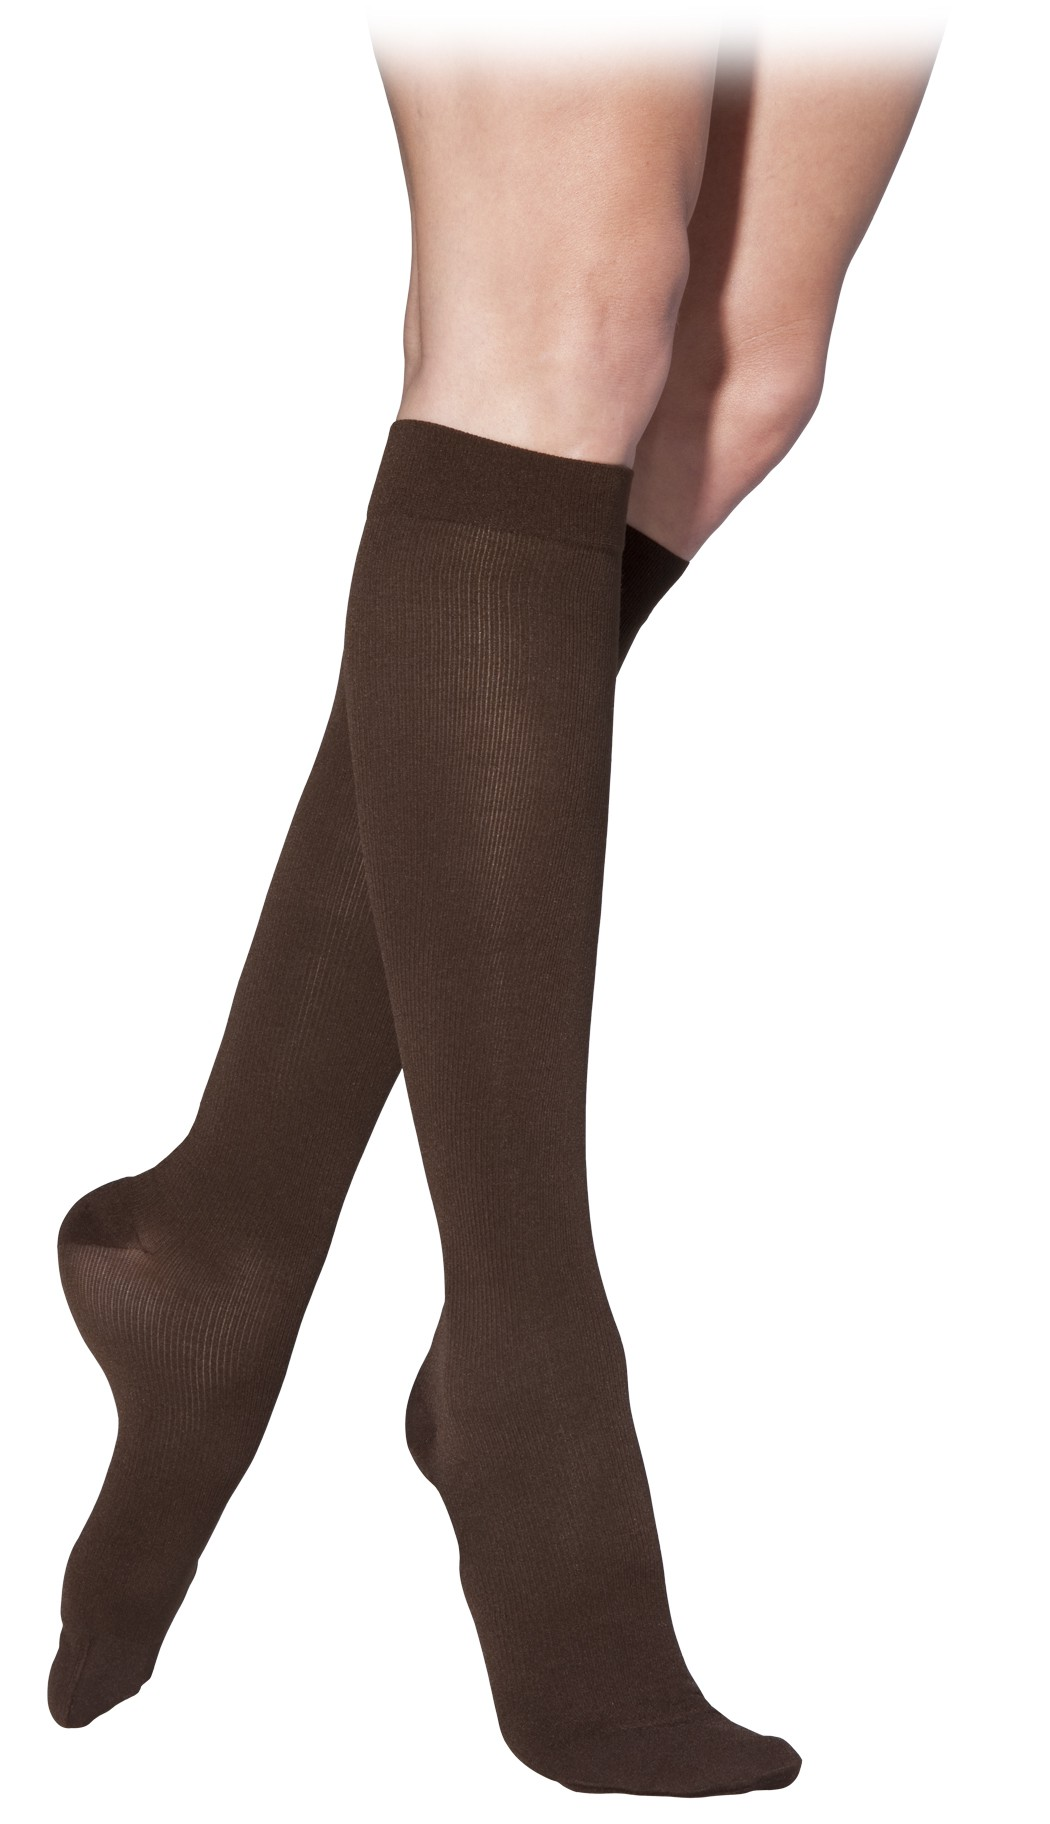 757480044e5 Sigvaris 360 Cushioned Cotton Women s Knee High Compression Socks - 362C  CLOSED TOE 20-30 mmHg  w FREE S H 362CLSW00